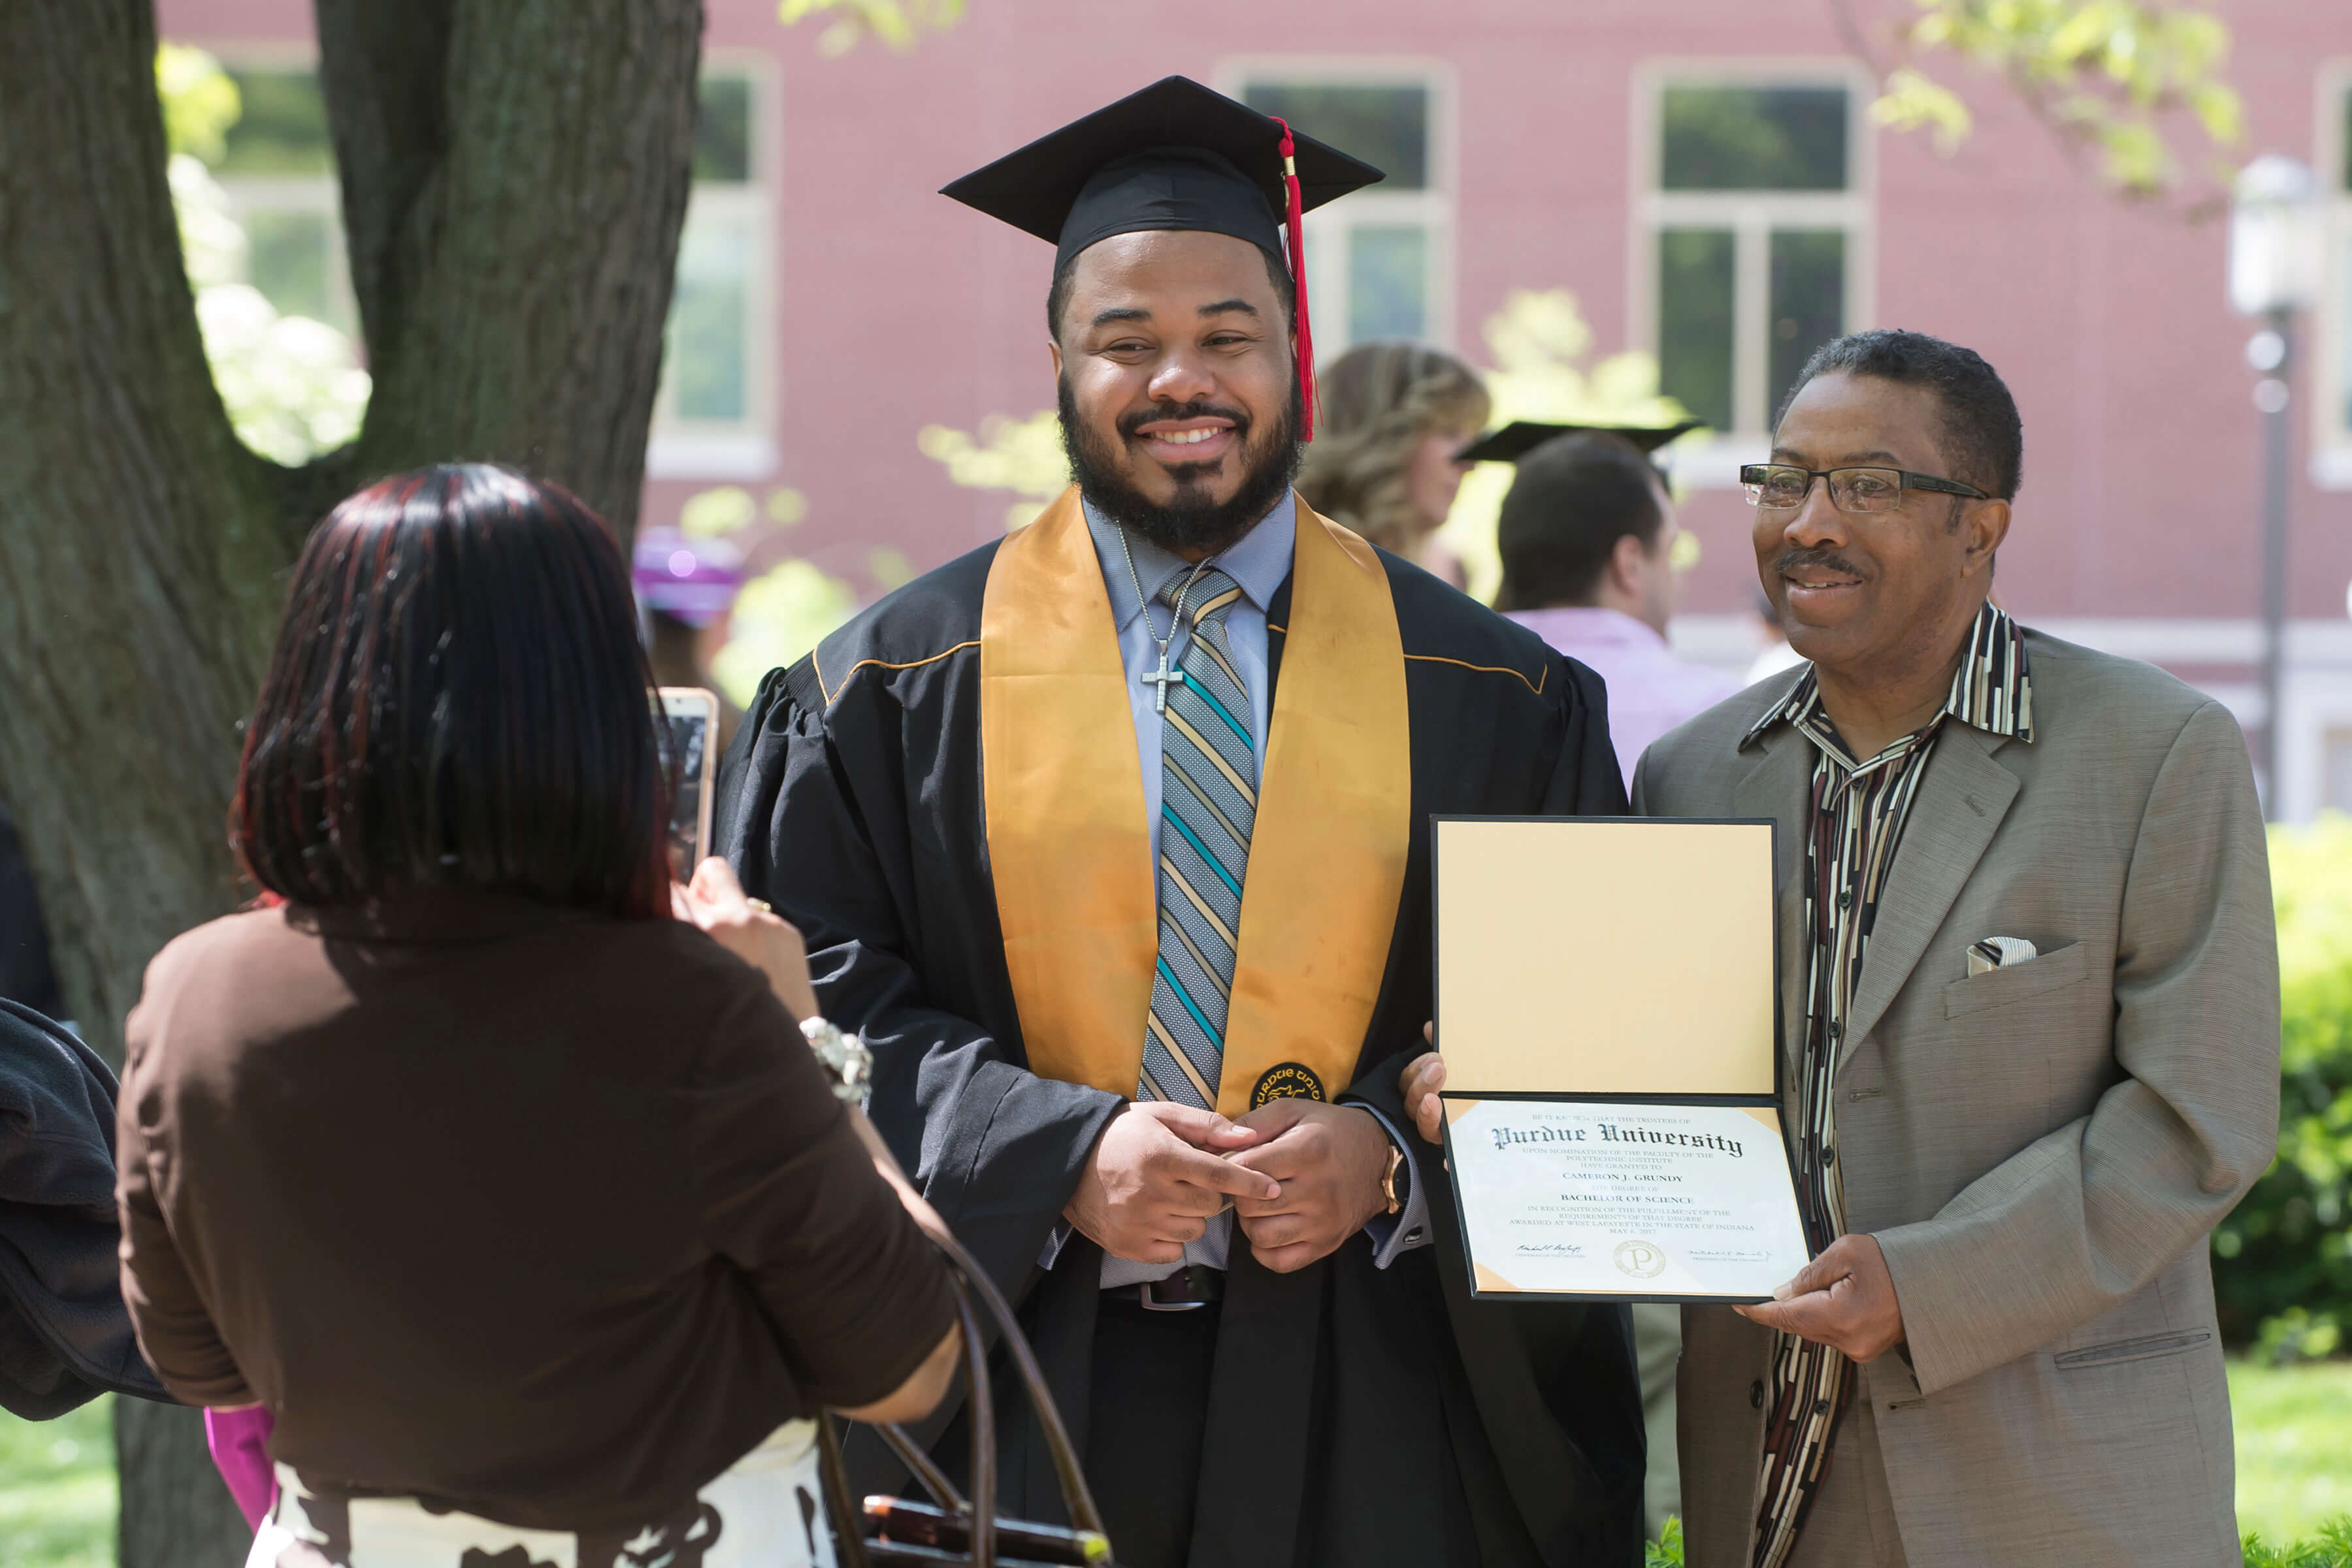 Purdues newest graduates receive degrees during